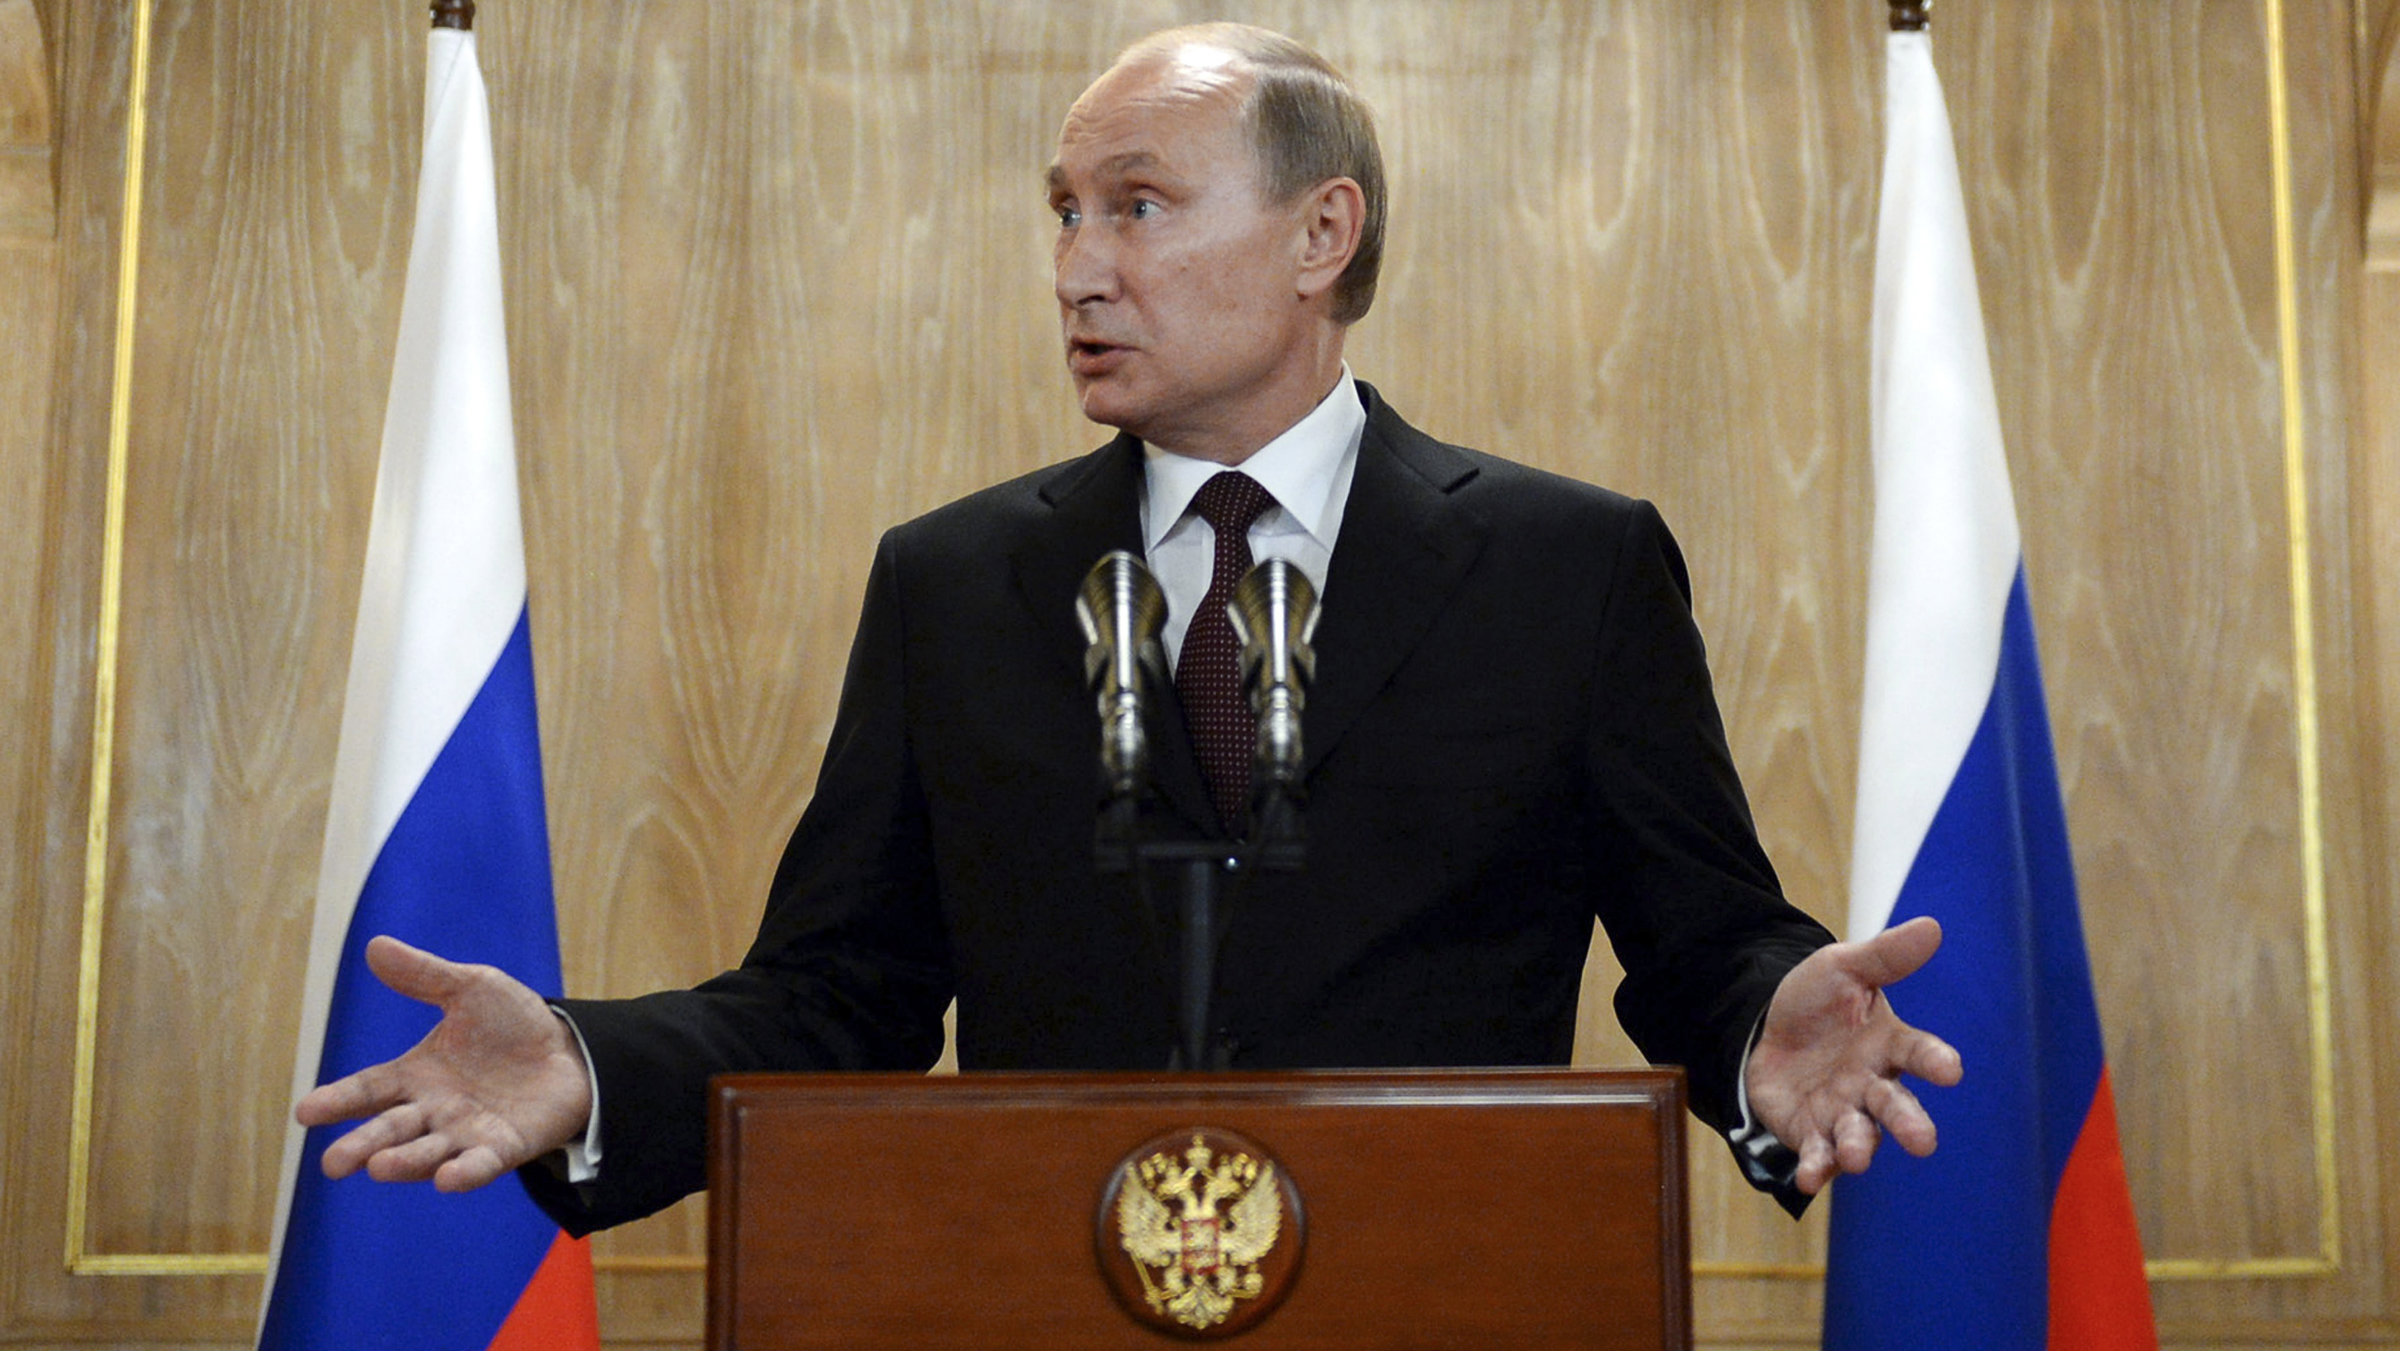 Russia's President Vladimir Putin gestures as he speaks during a news conference.